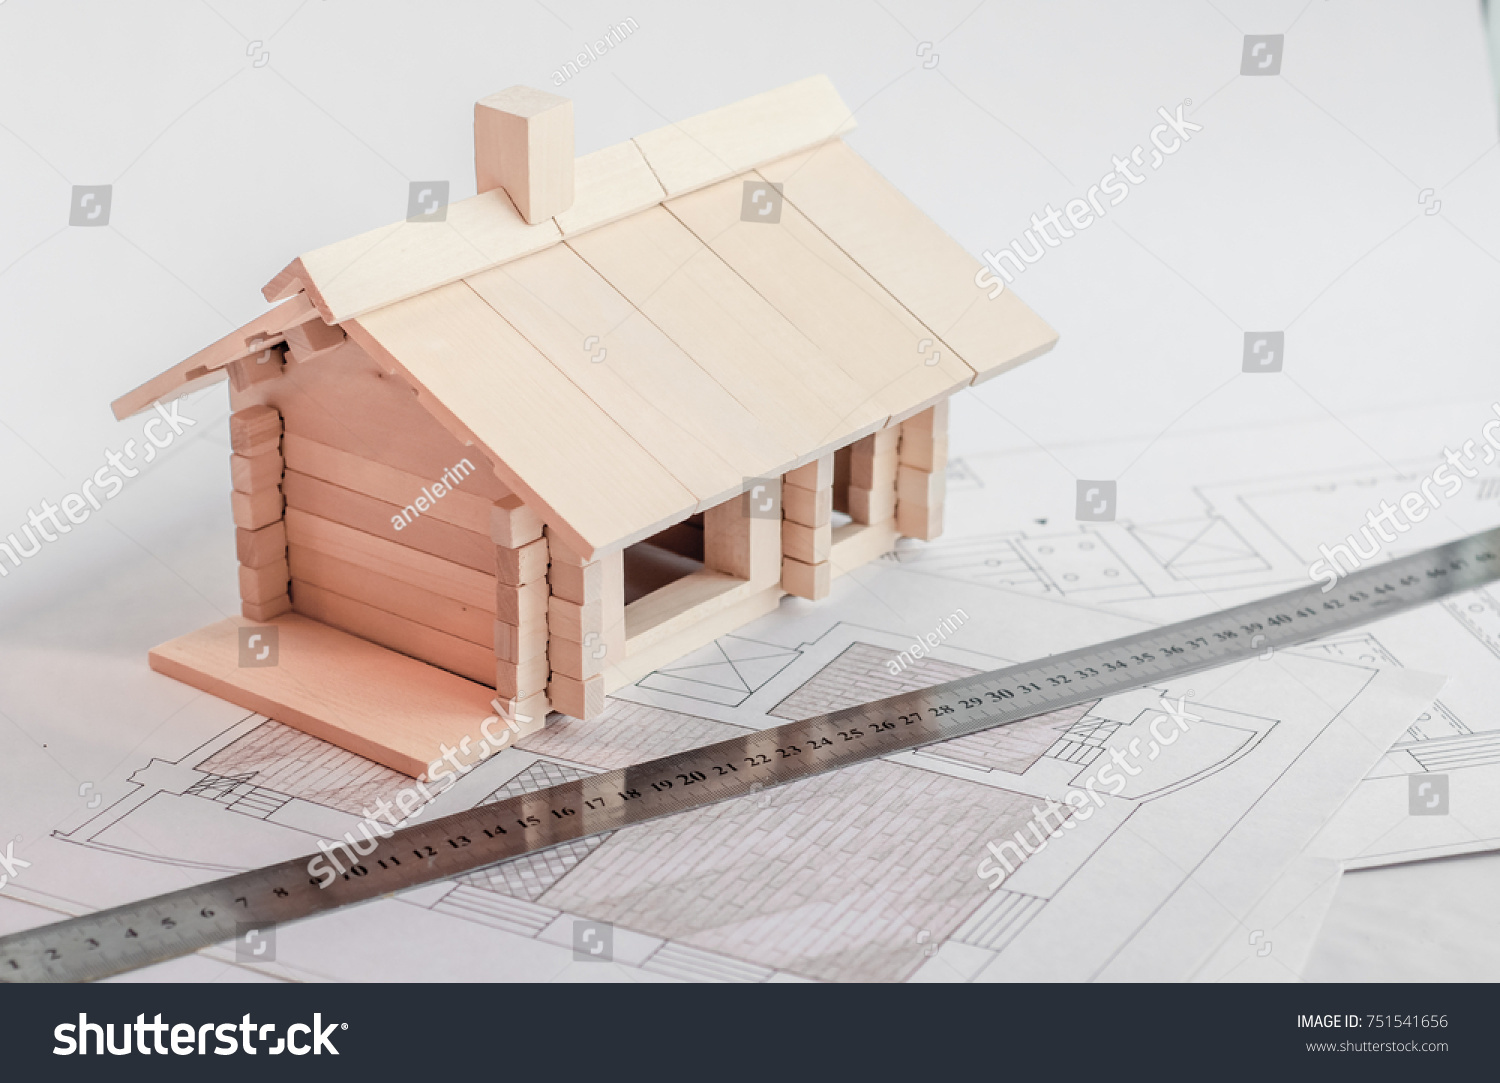 Layout Wooden House Construction Drawings Design Stock Photo (Safe ...